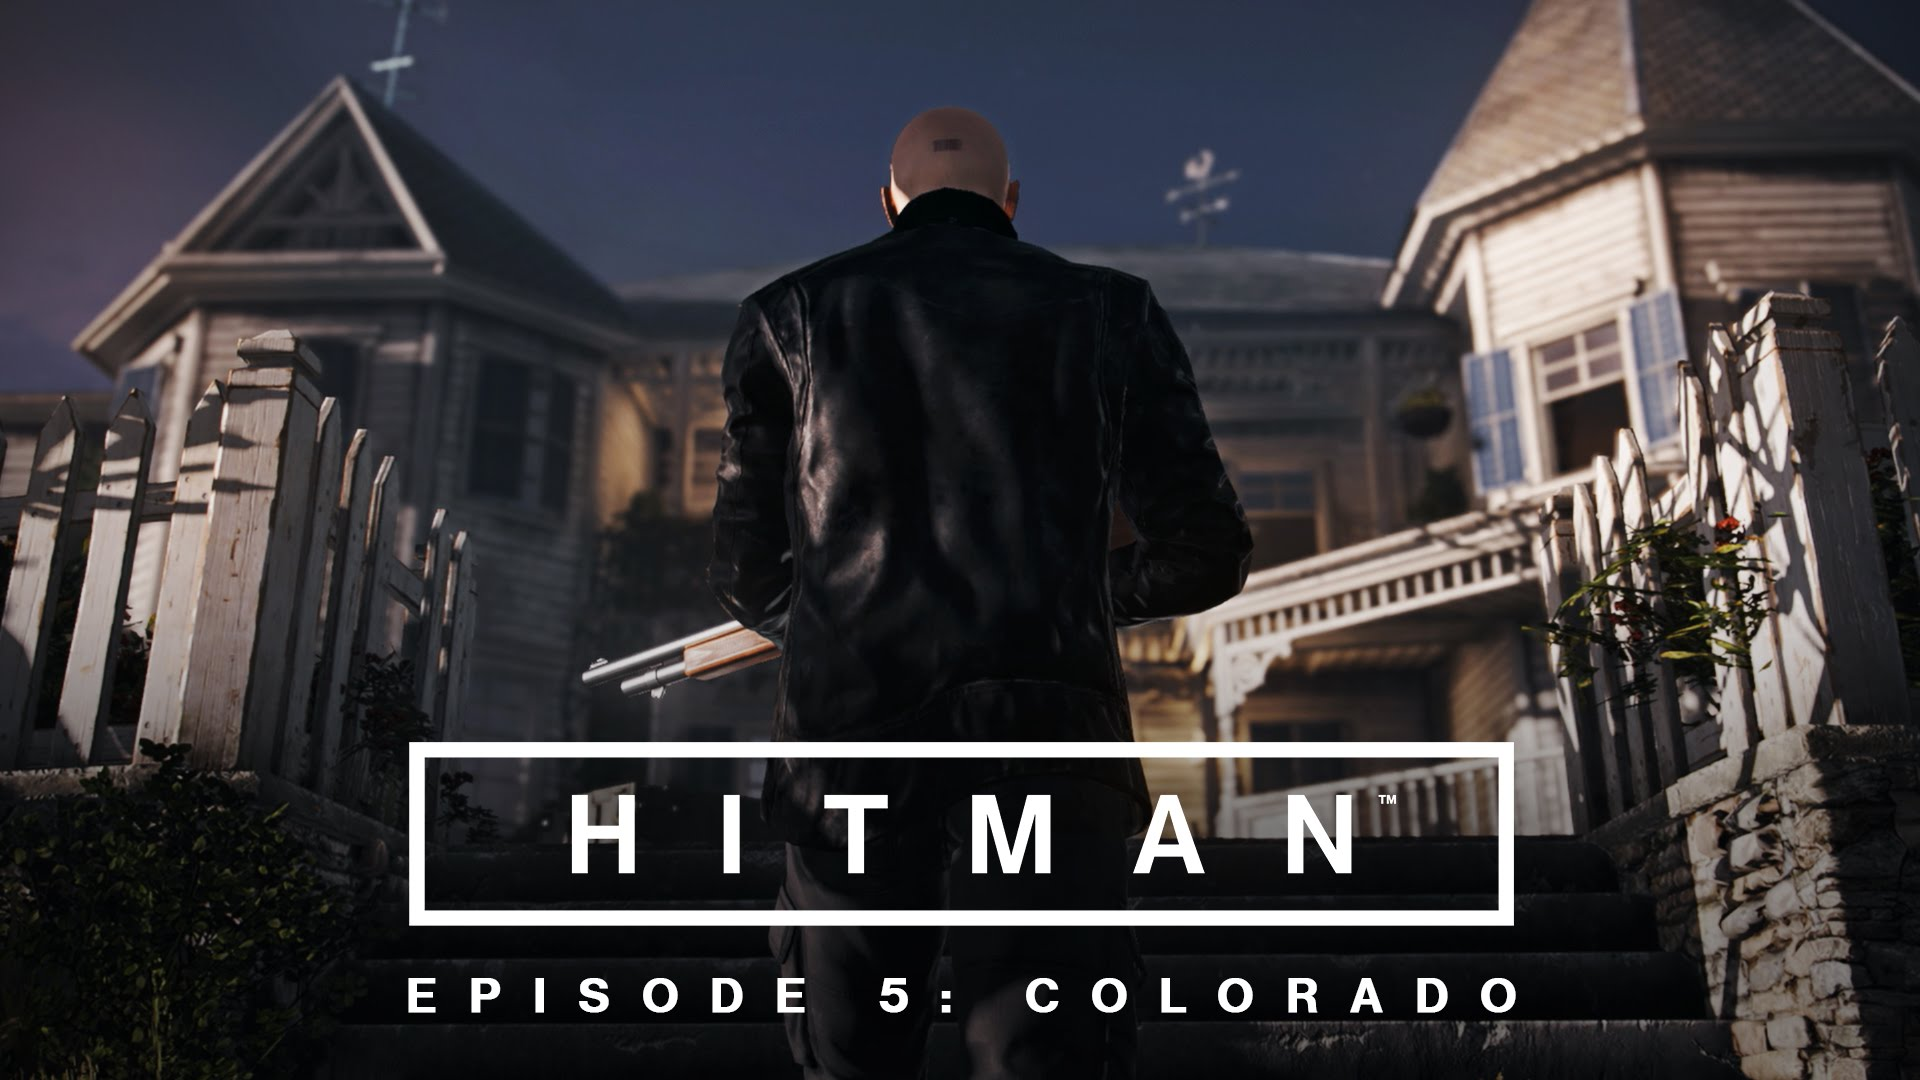 HITMAN - Episode 5: Colorado Teaser Trailer